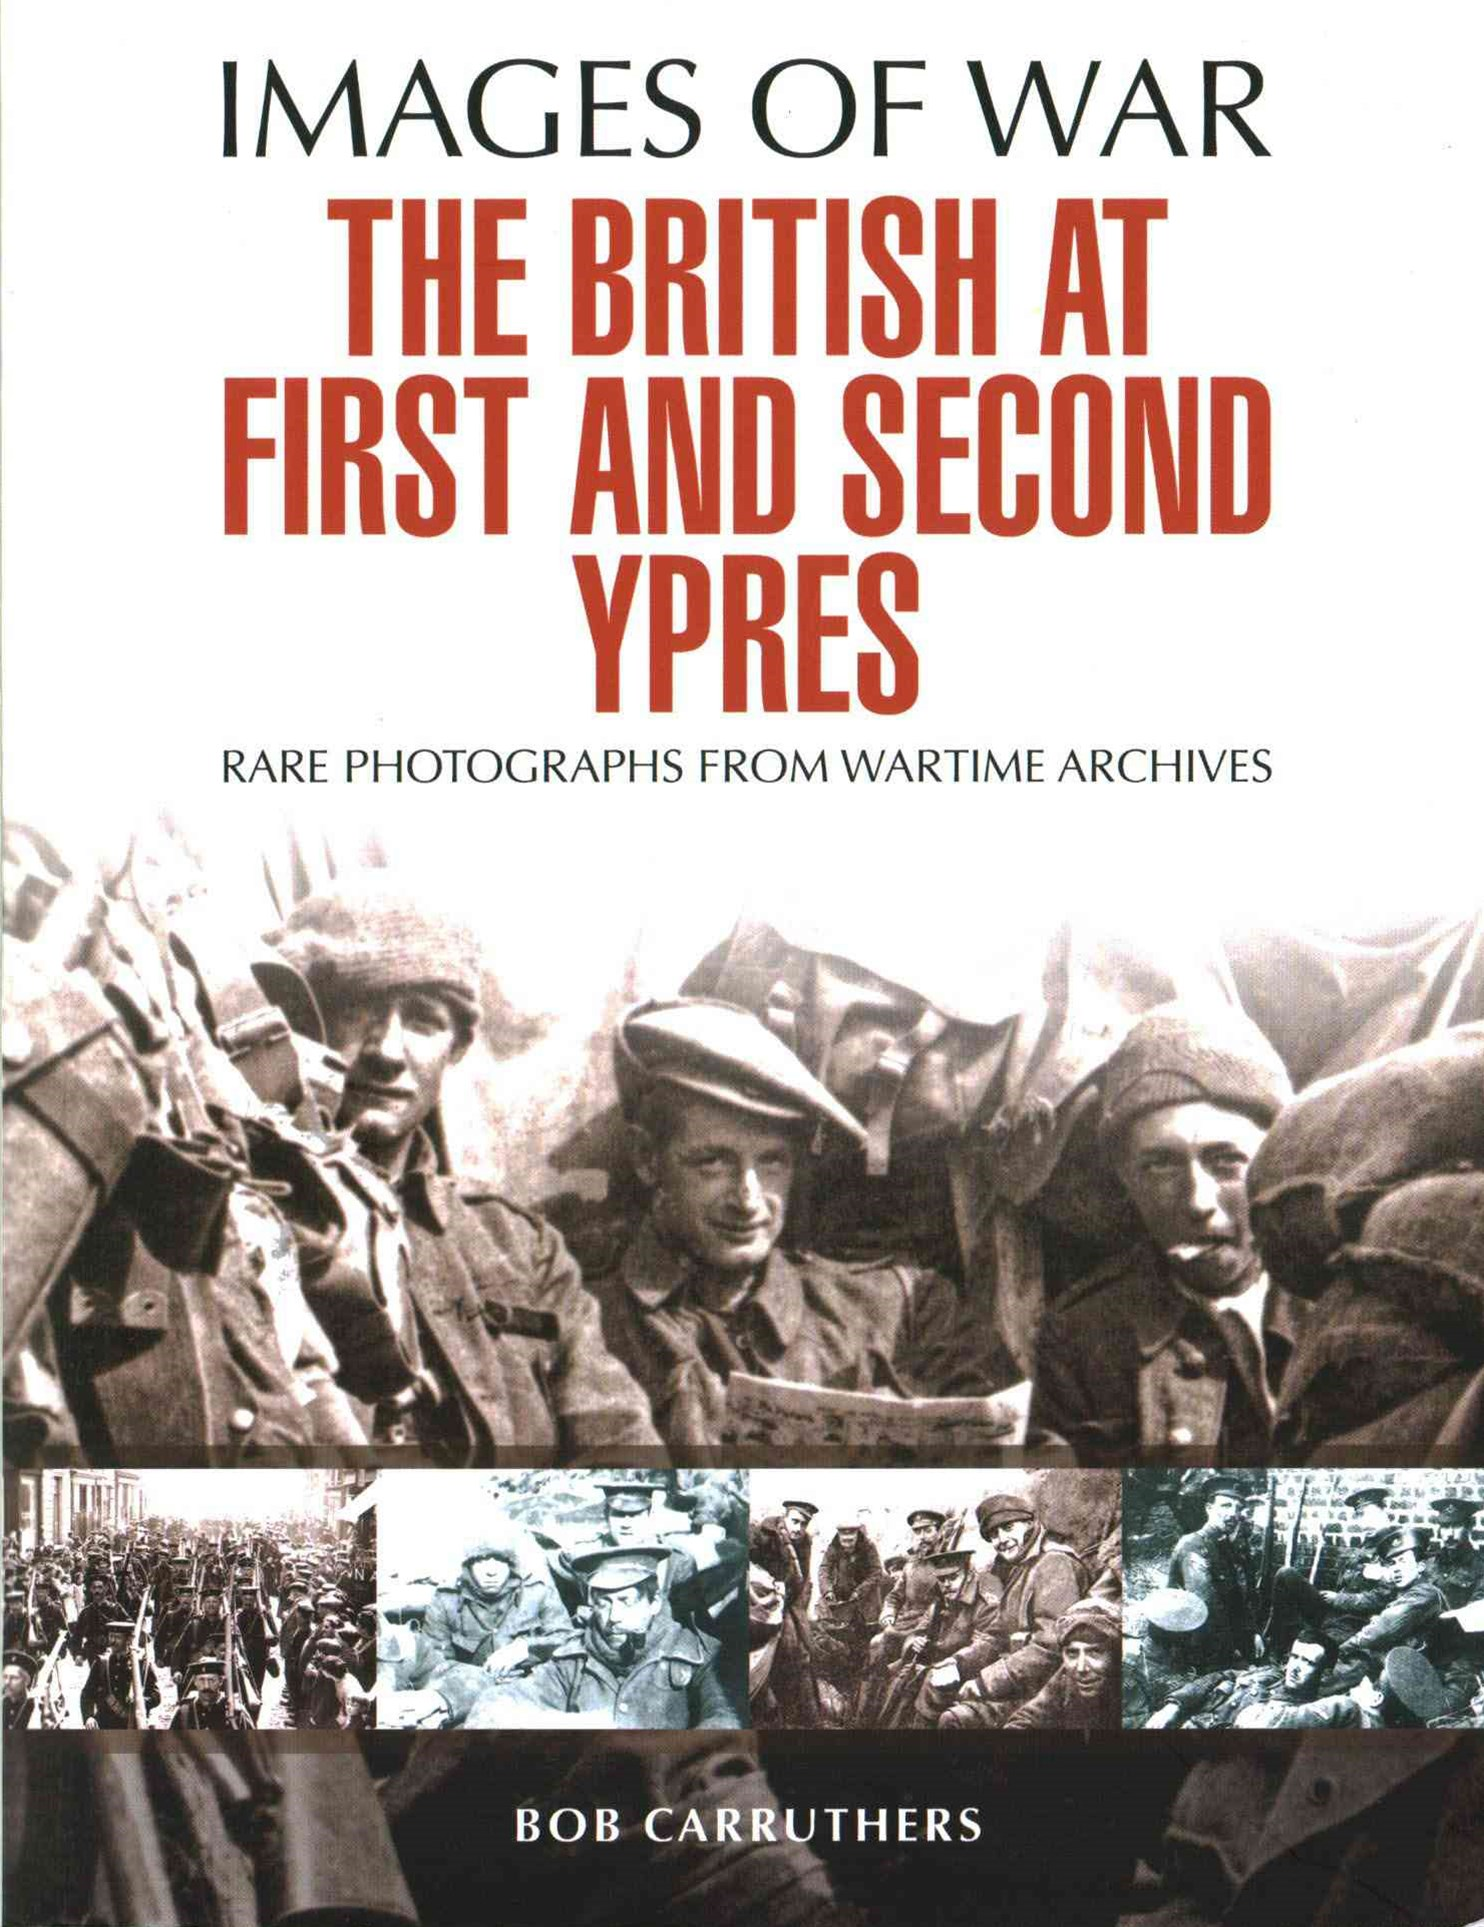 British at First and Second Ypres 1914 - 1915